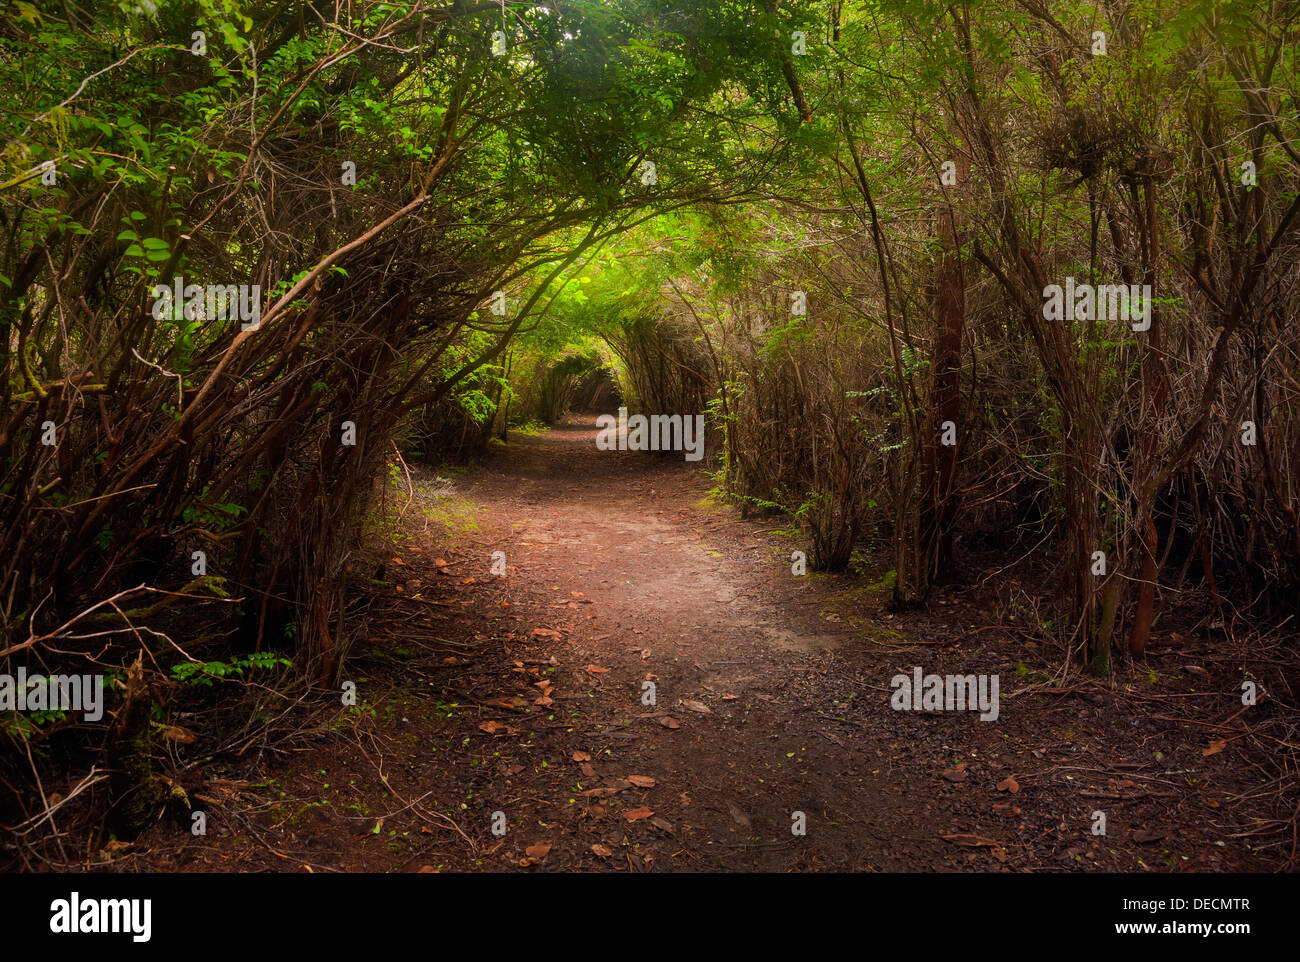 OREGON - Tunnel Trail in the South Slough National Estuarine Research Reserve. - Stock Image